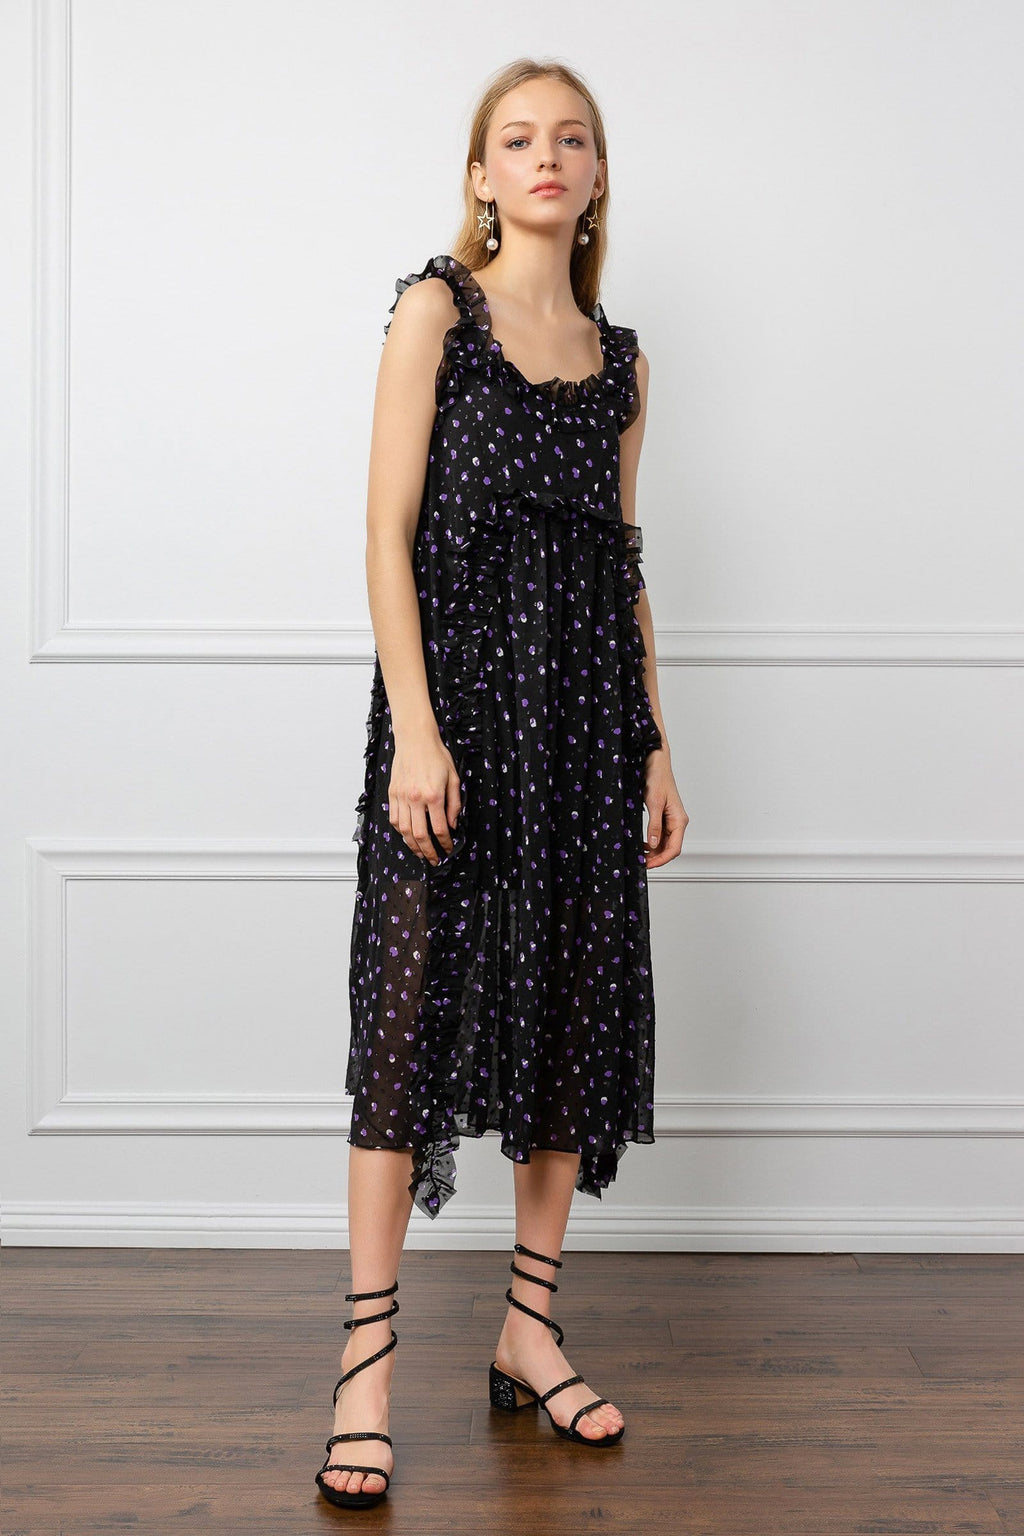 https://cdn.shopify.com/s/files/1/0015/5638/1732/files/Tessa_Dress-VD.mp4?48813